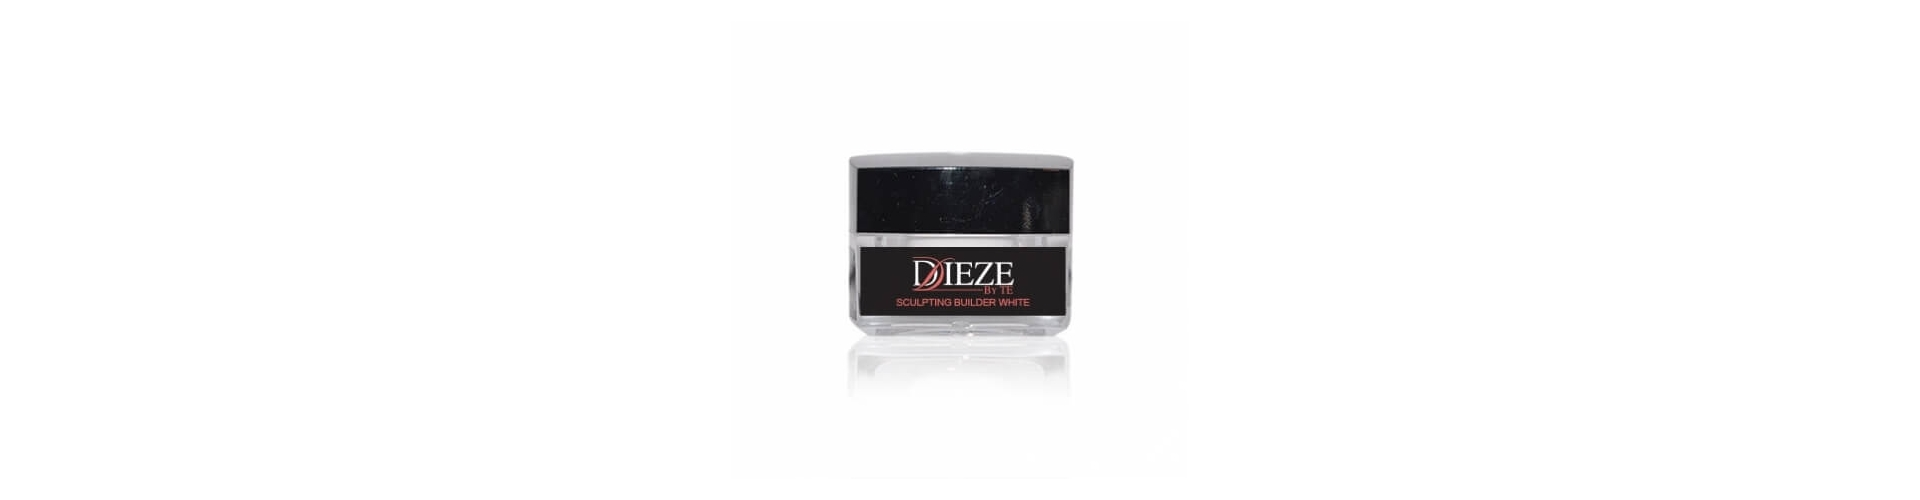 You want a french manicure? DIEZE offers gels to make classical french